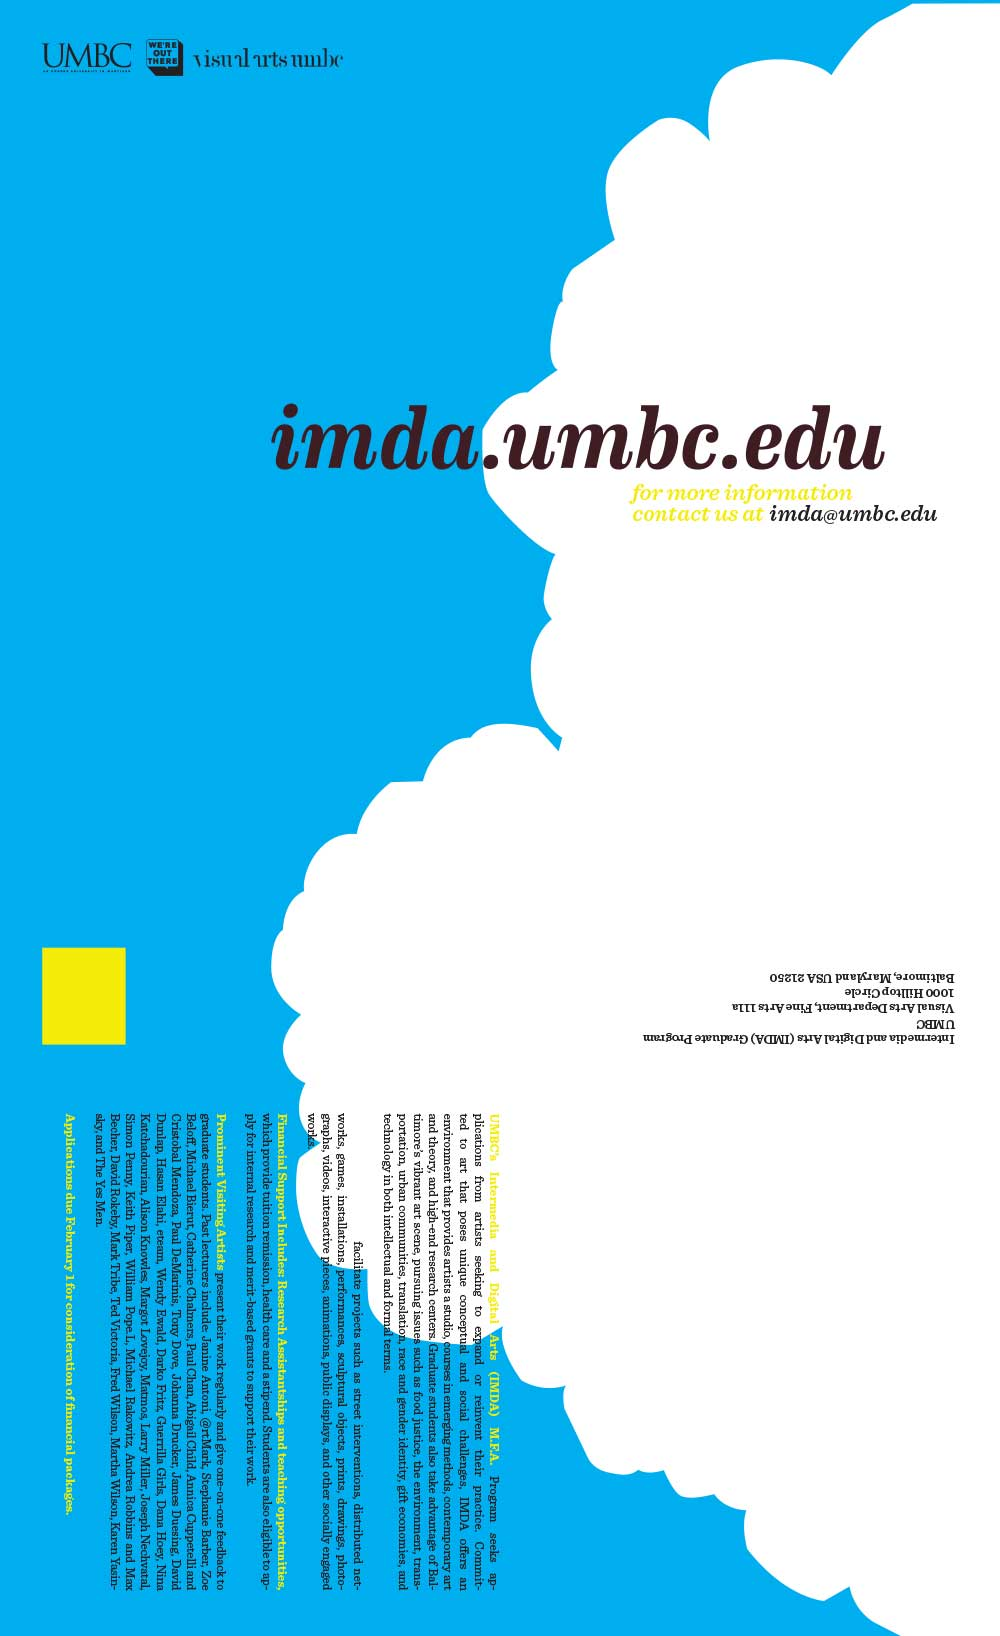 Promotional poster and mailer for the Intermedia and Digital Arts Graduate Program at University of Maryland, Baltimore County - side one